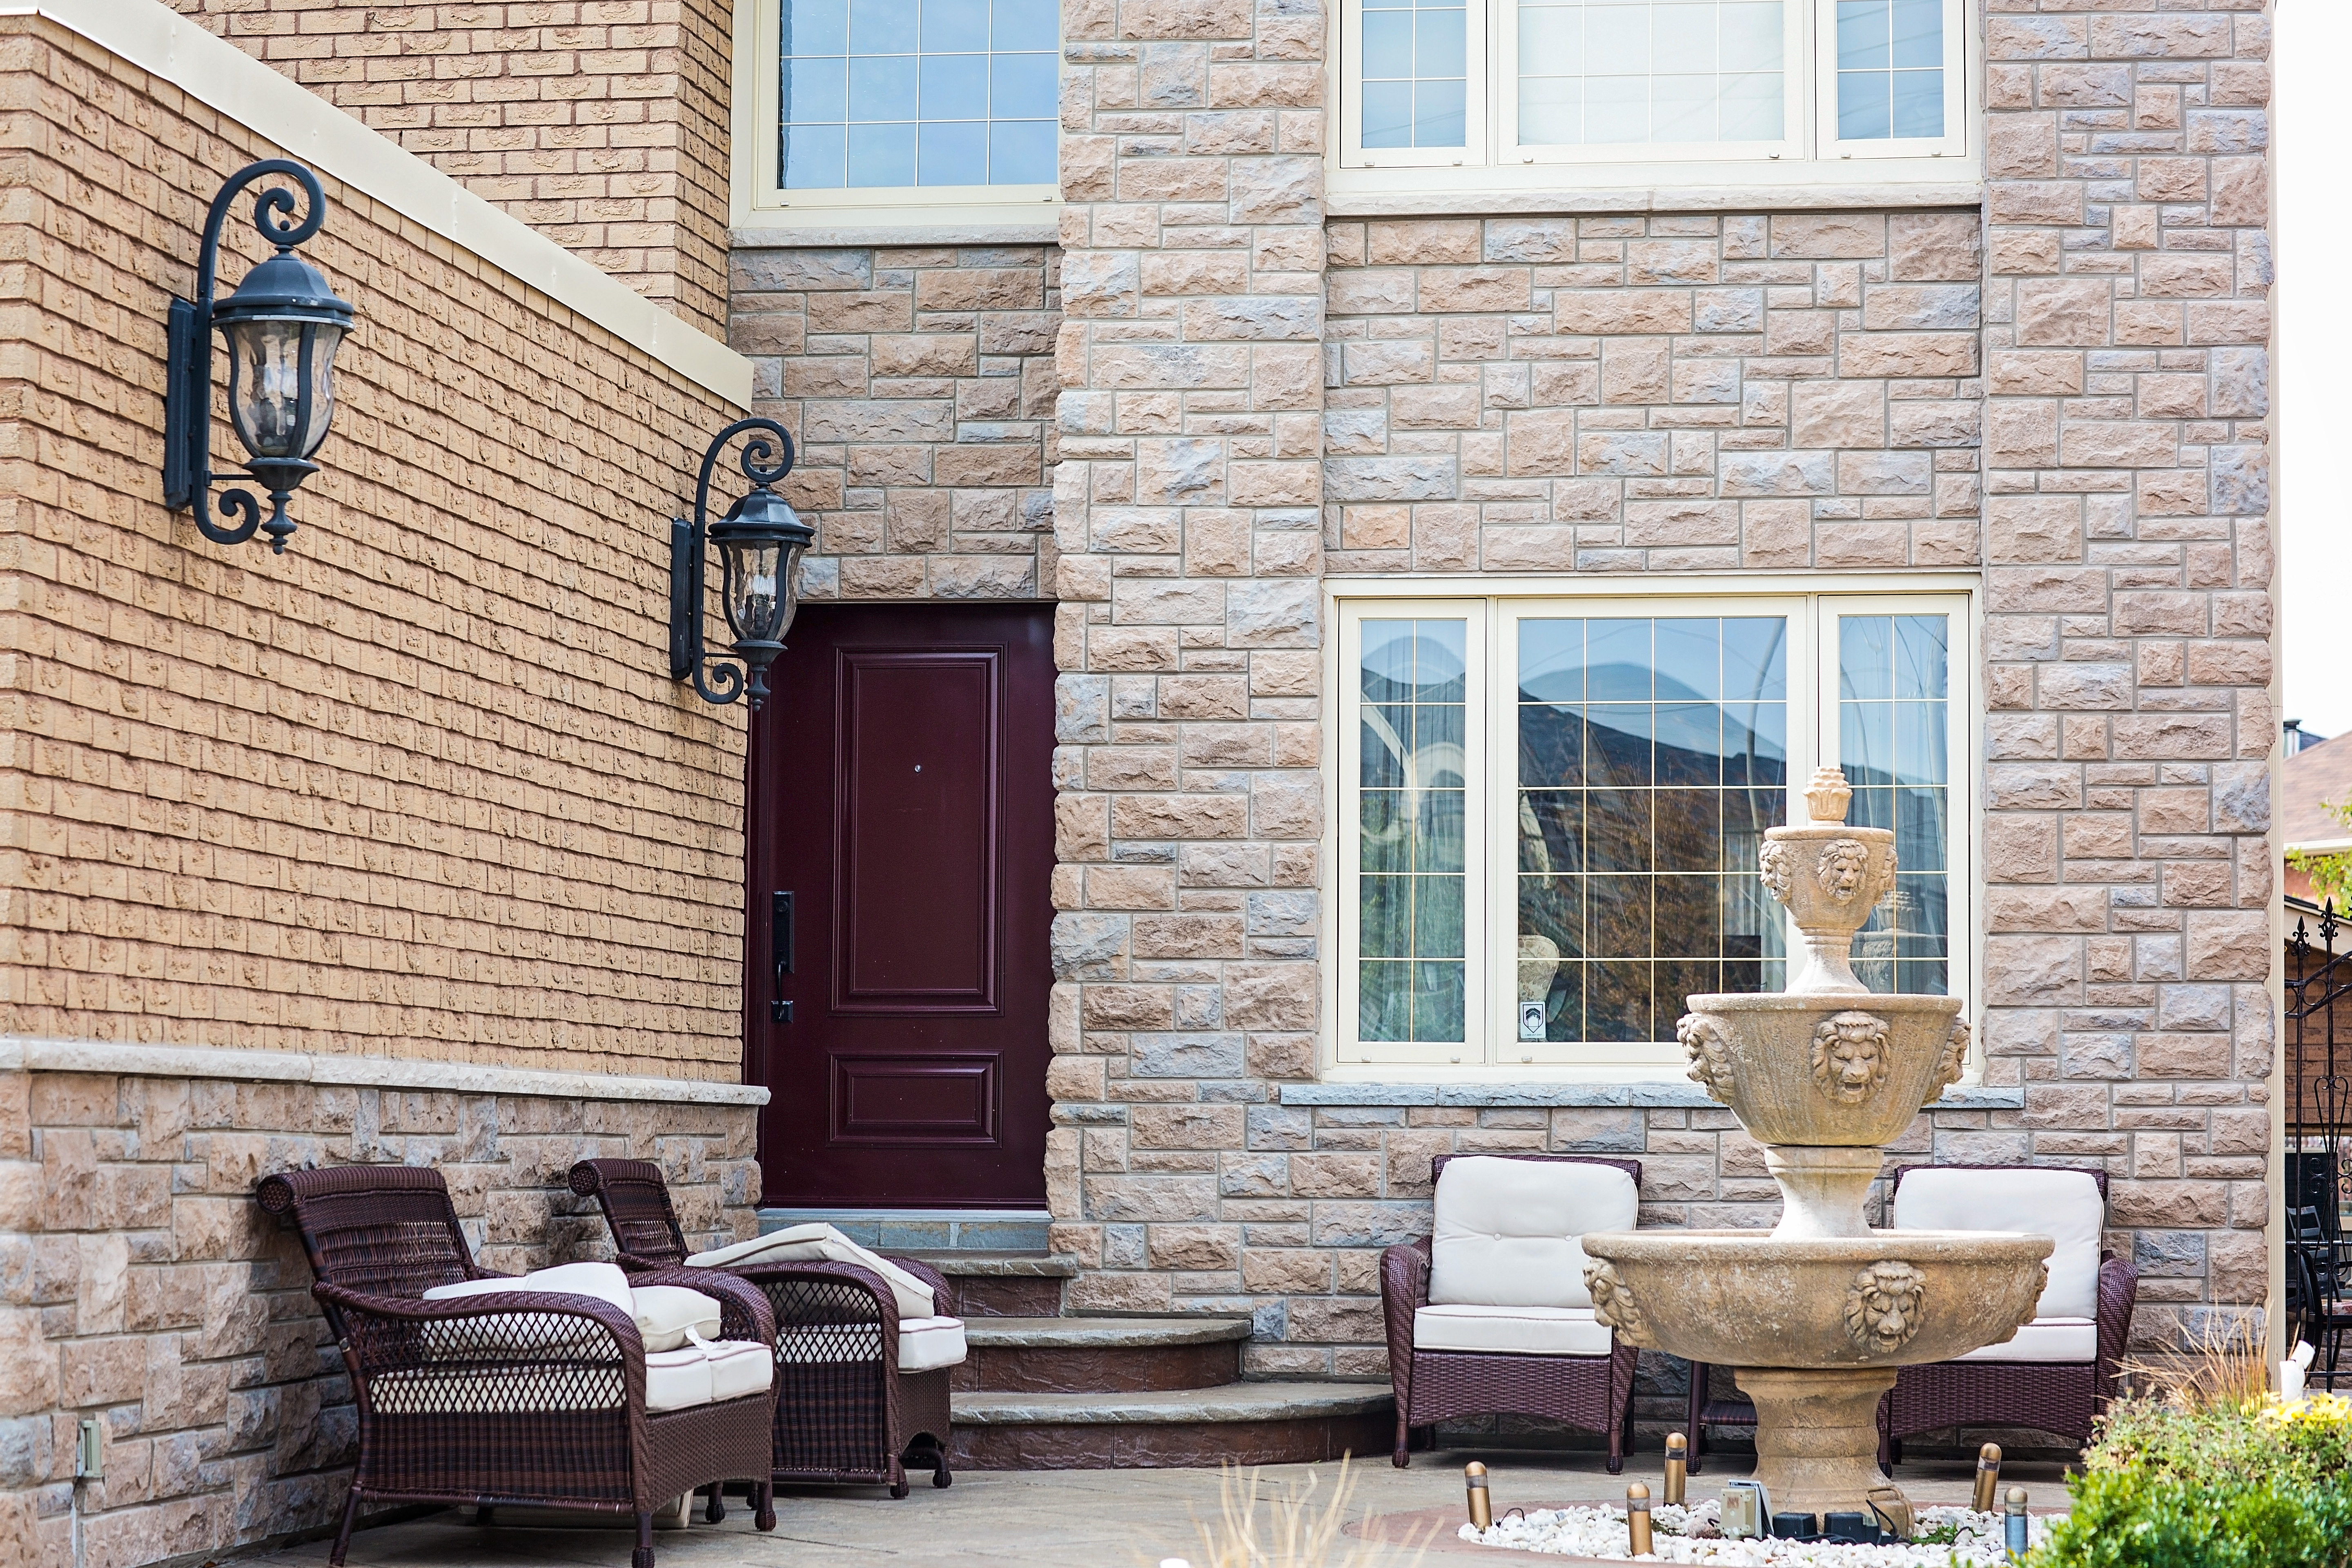 It Is Processed Natural Stone Used For Stone Facing The Exterior Of Homes.  With Traditional English Styling, It Is Made In Canada To Meet The Most  Demanding ...